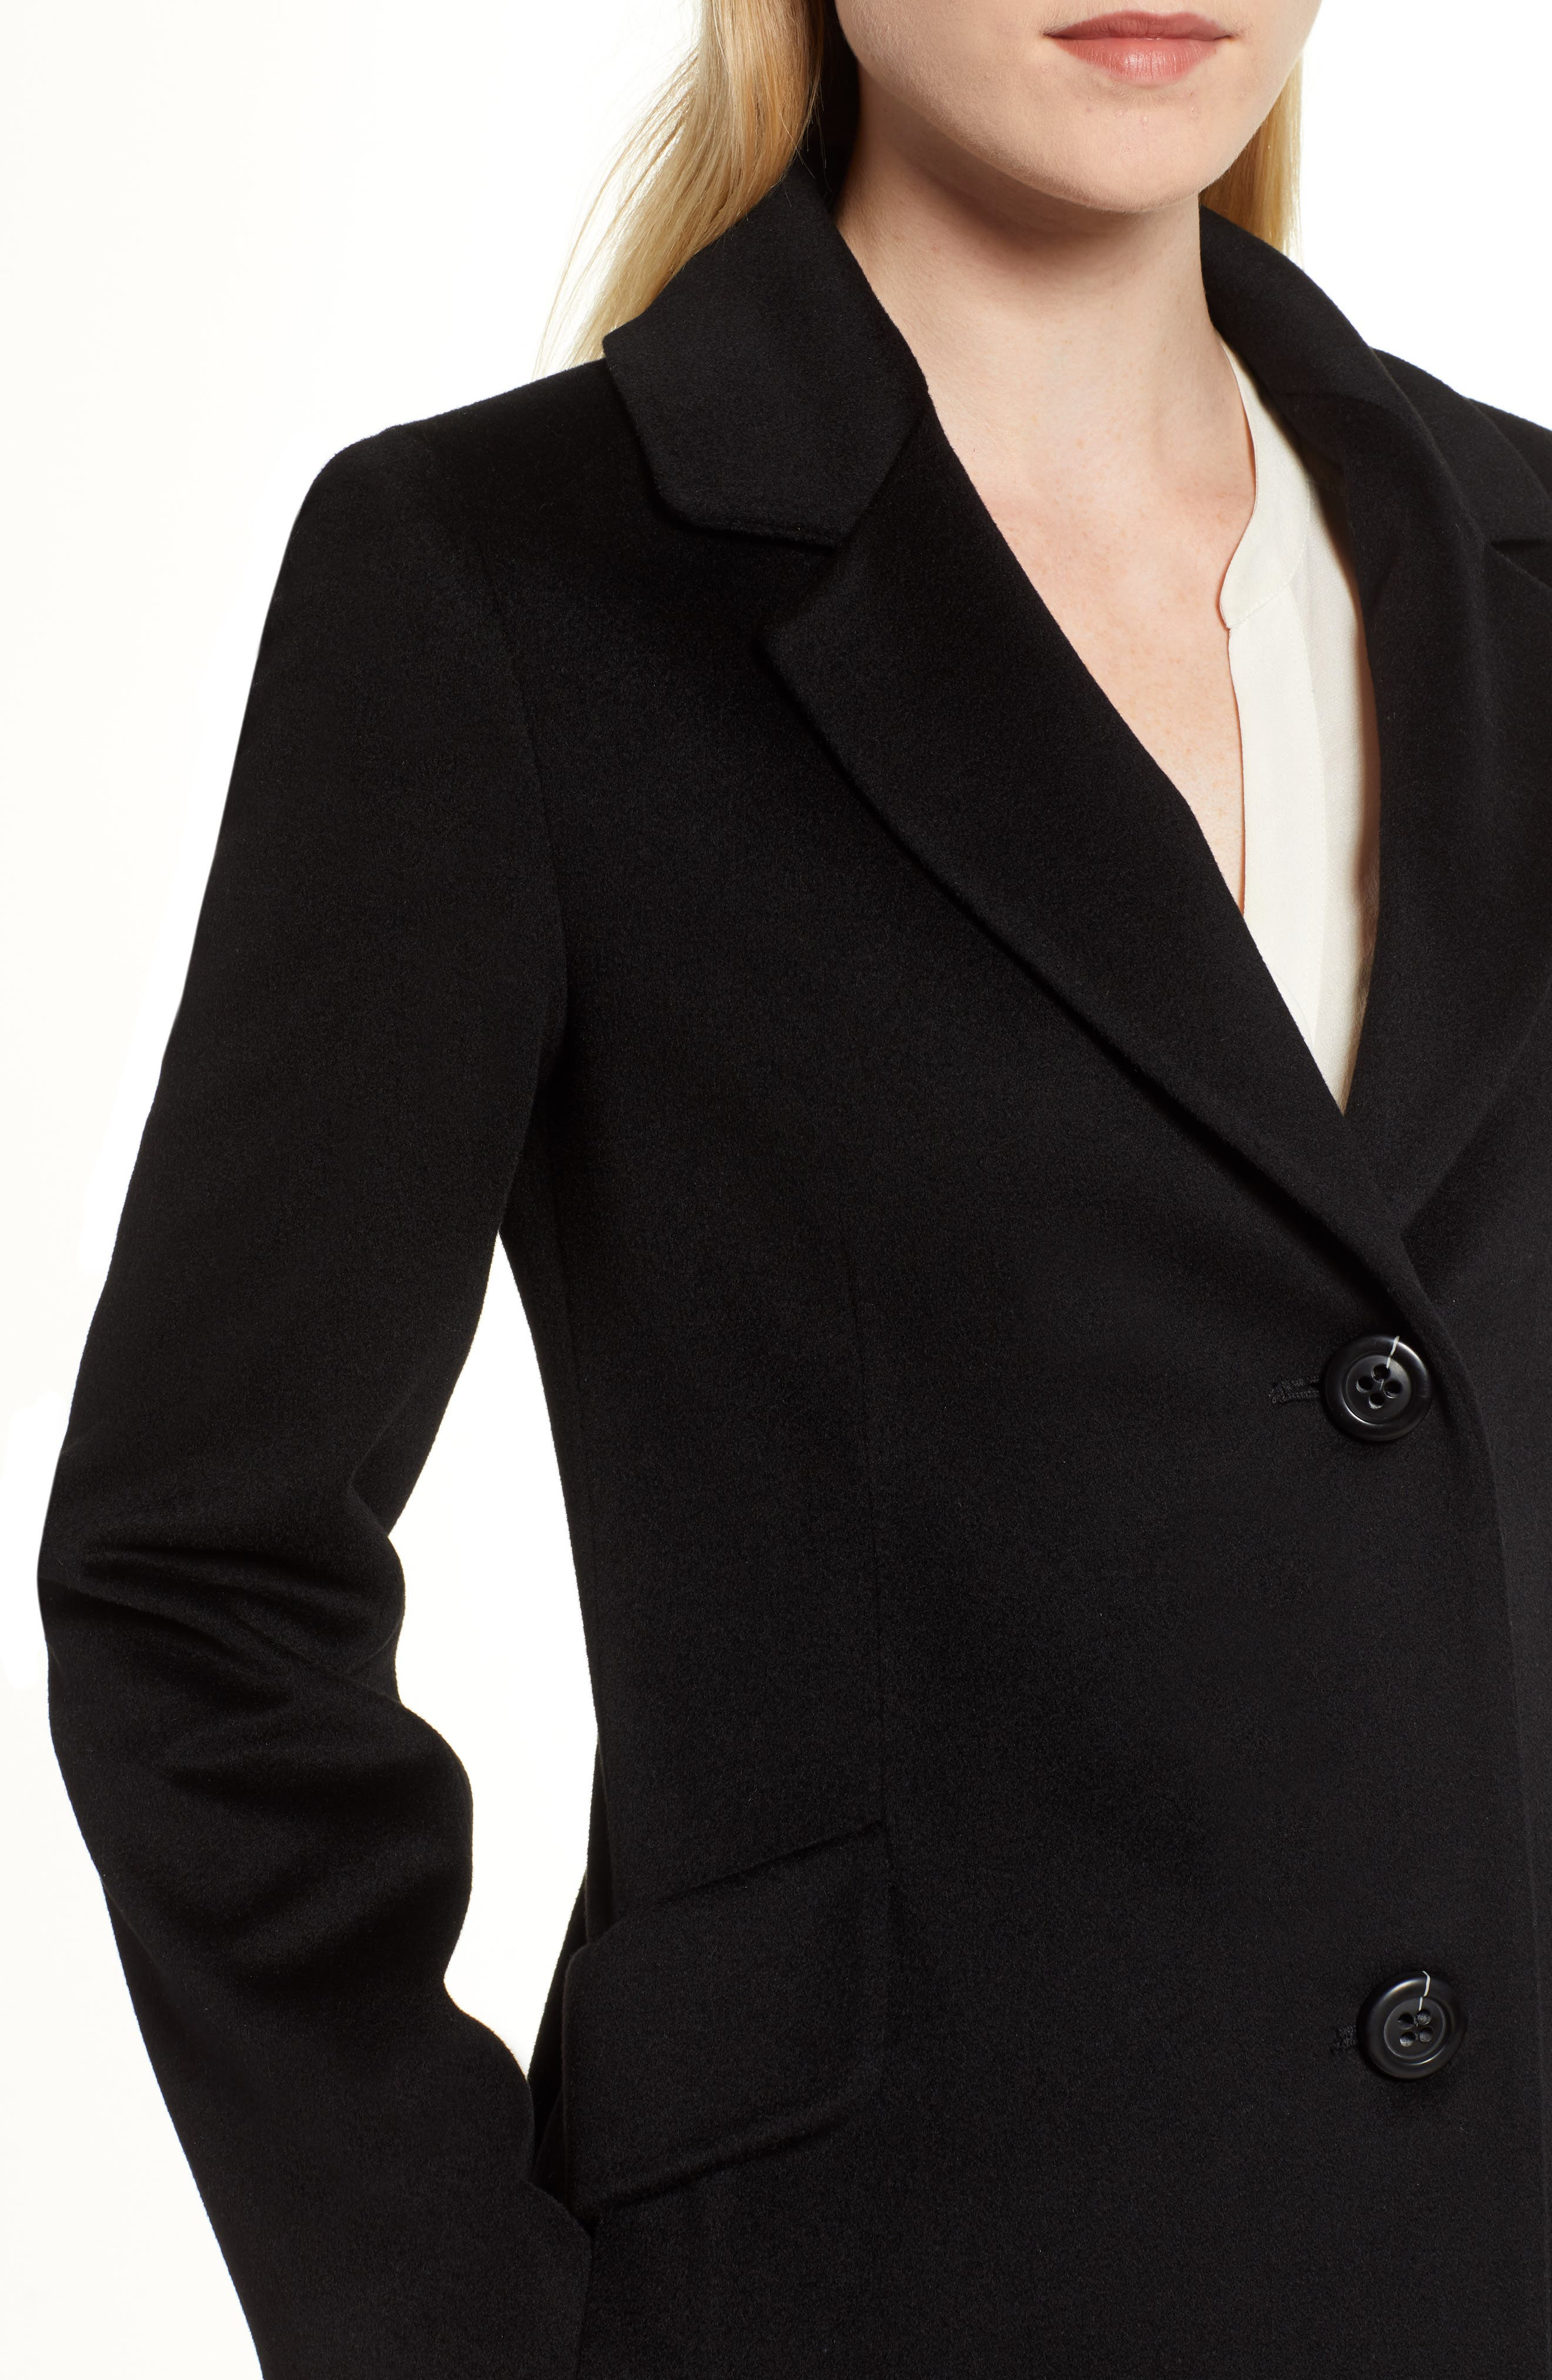 Notch Collar Wool Coat,                             Alternate thumbnail 4, color,                             BLACK